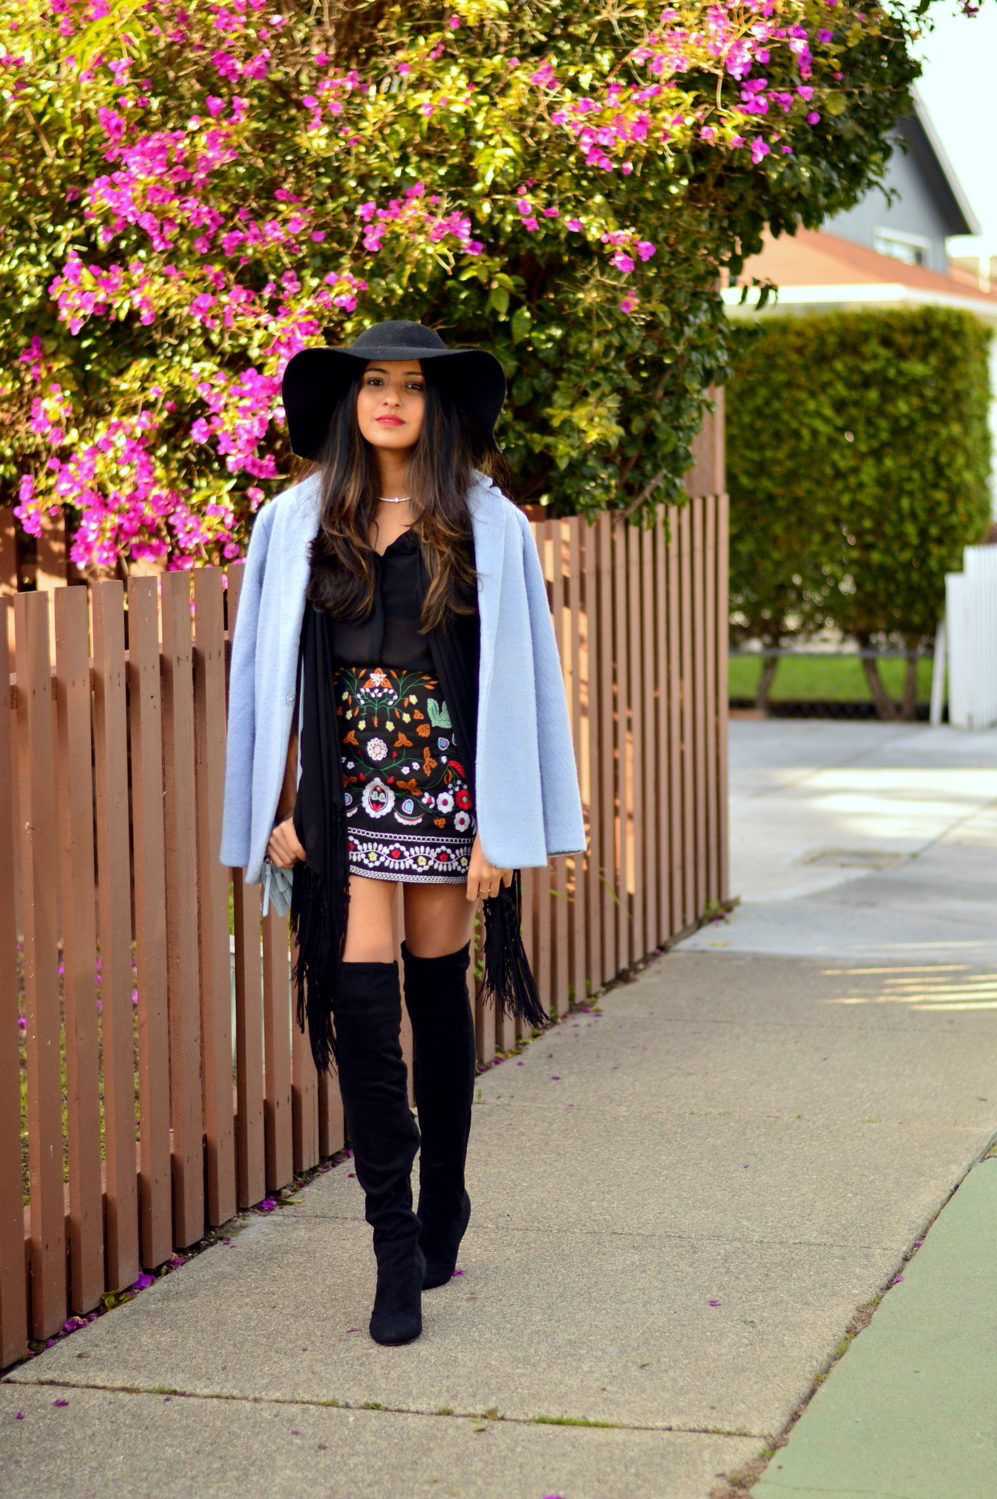 embroidered-skirt-fringe-blouse-winter-layers-blogger-outfit 1